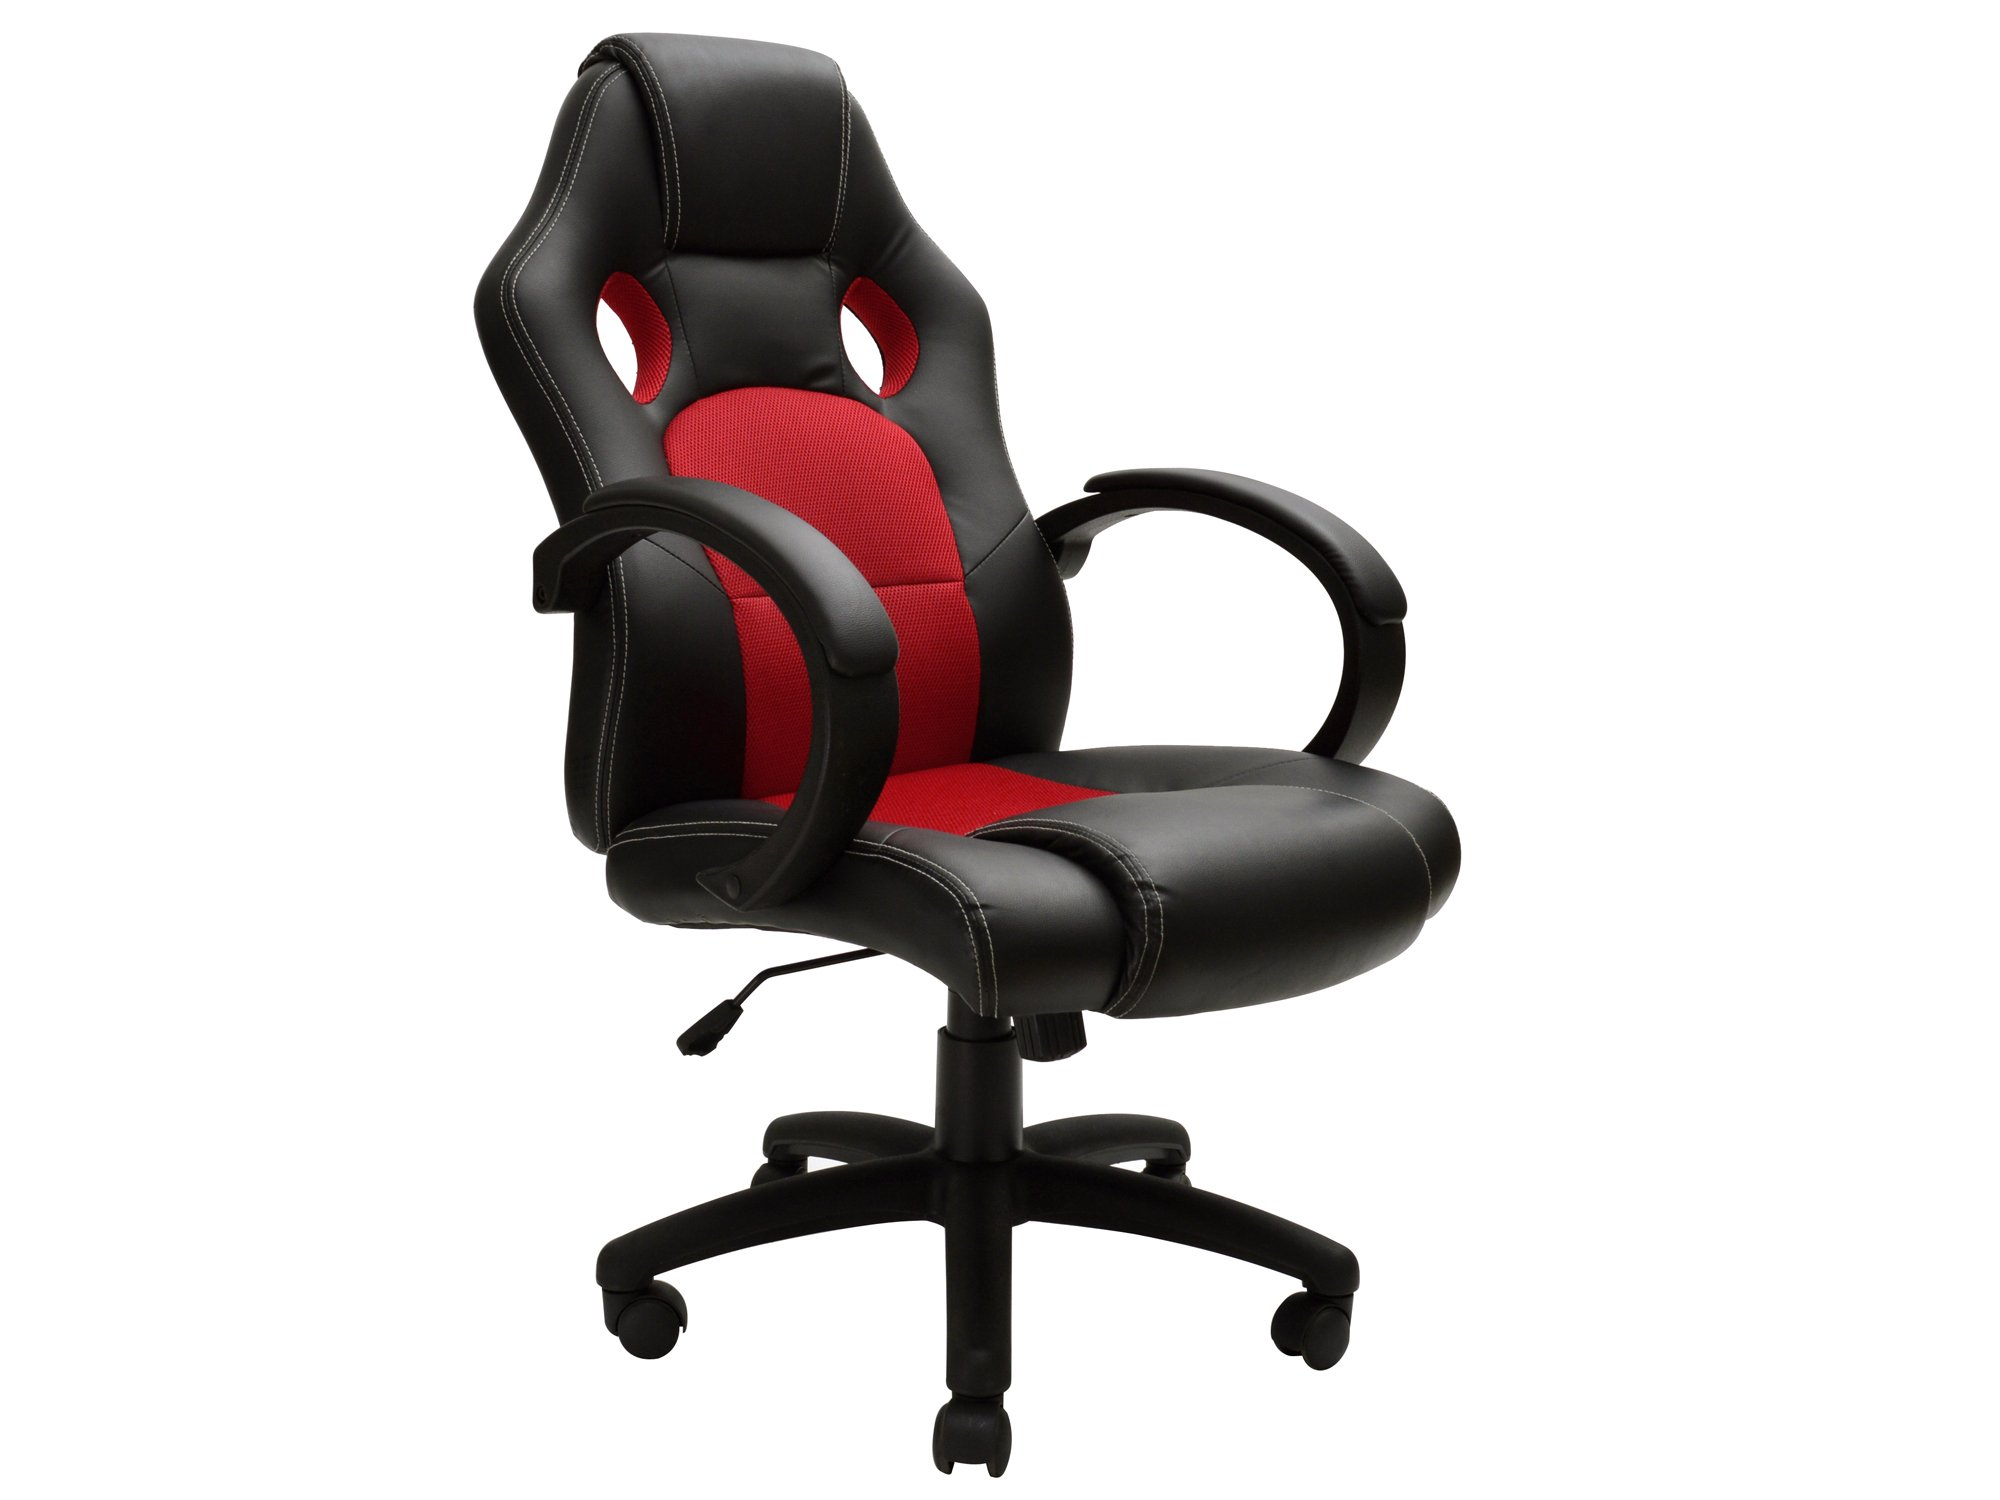 TMS High Back Race Car Style Bucket Seat Office Chair Swivel Desk Computer Seat Red